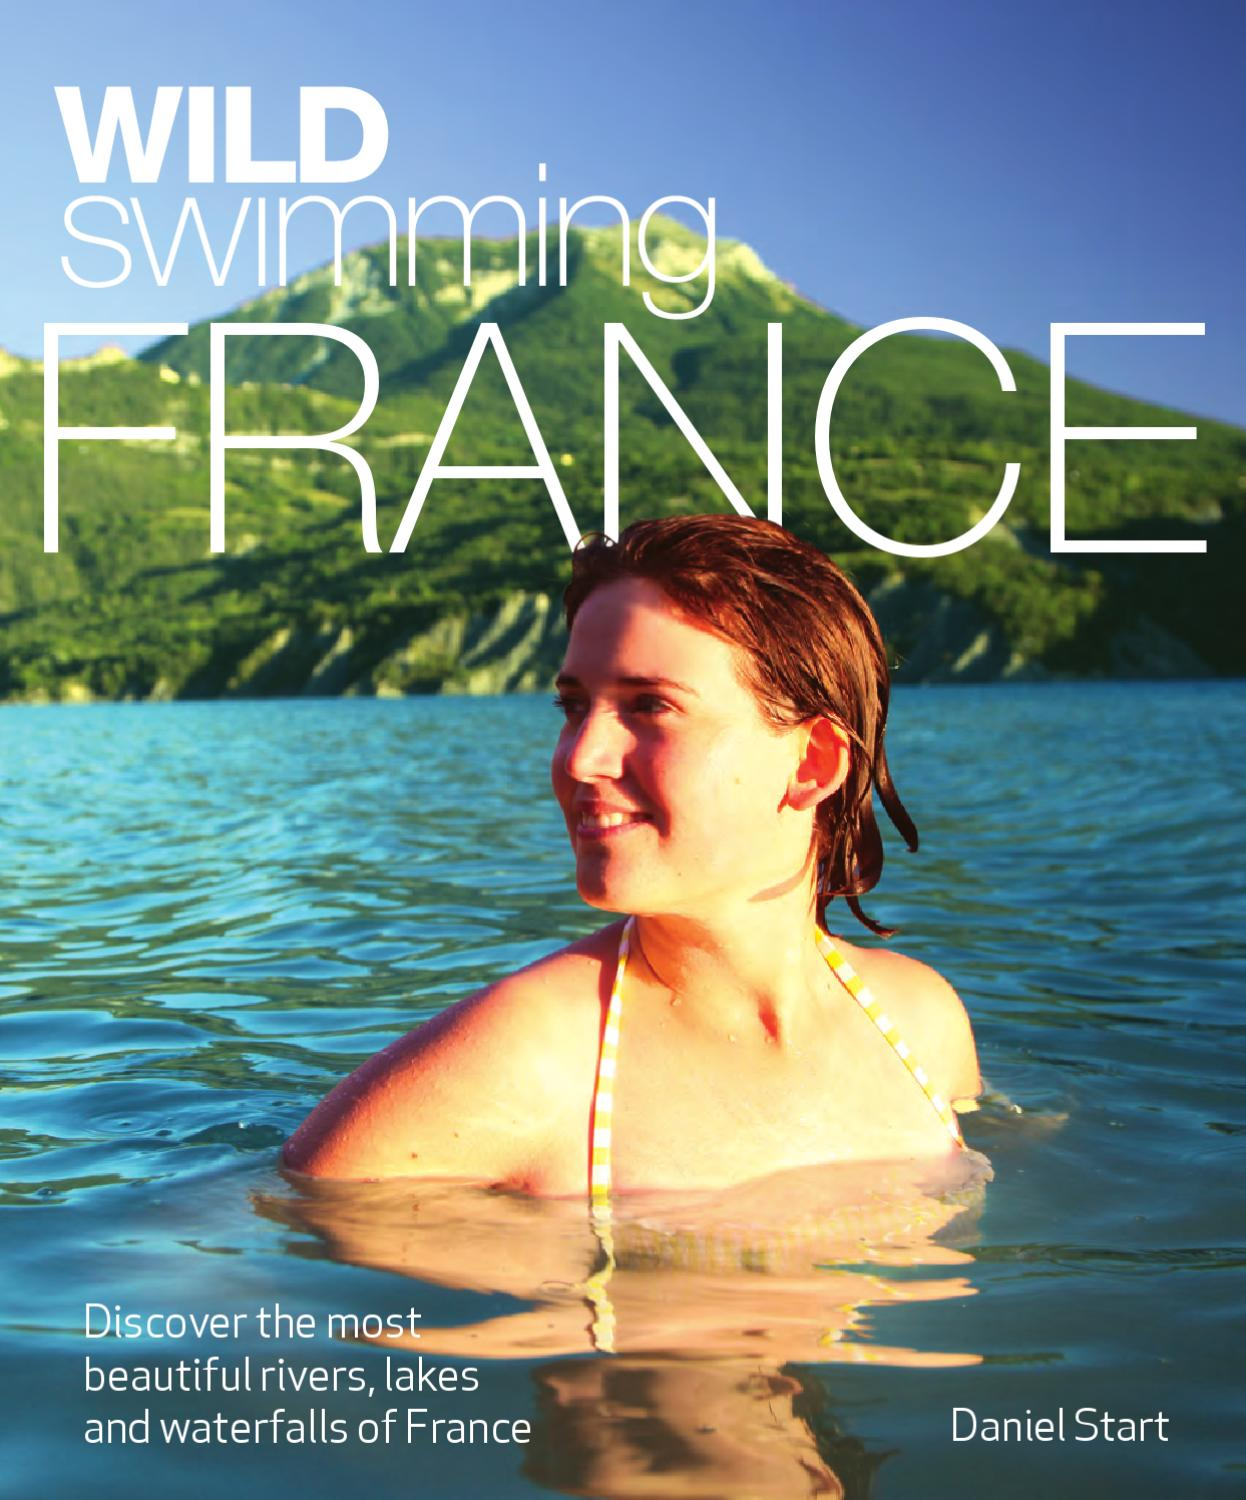 Wild Swimming France Book Sample 2 By Wild Things Publishing   Issuu